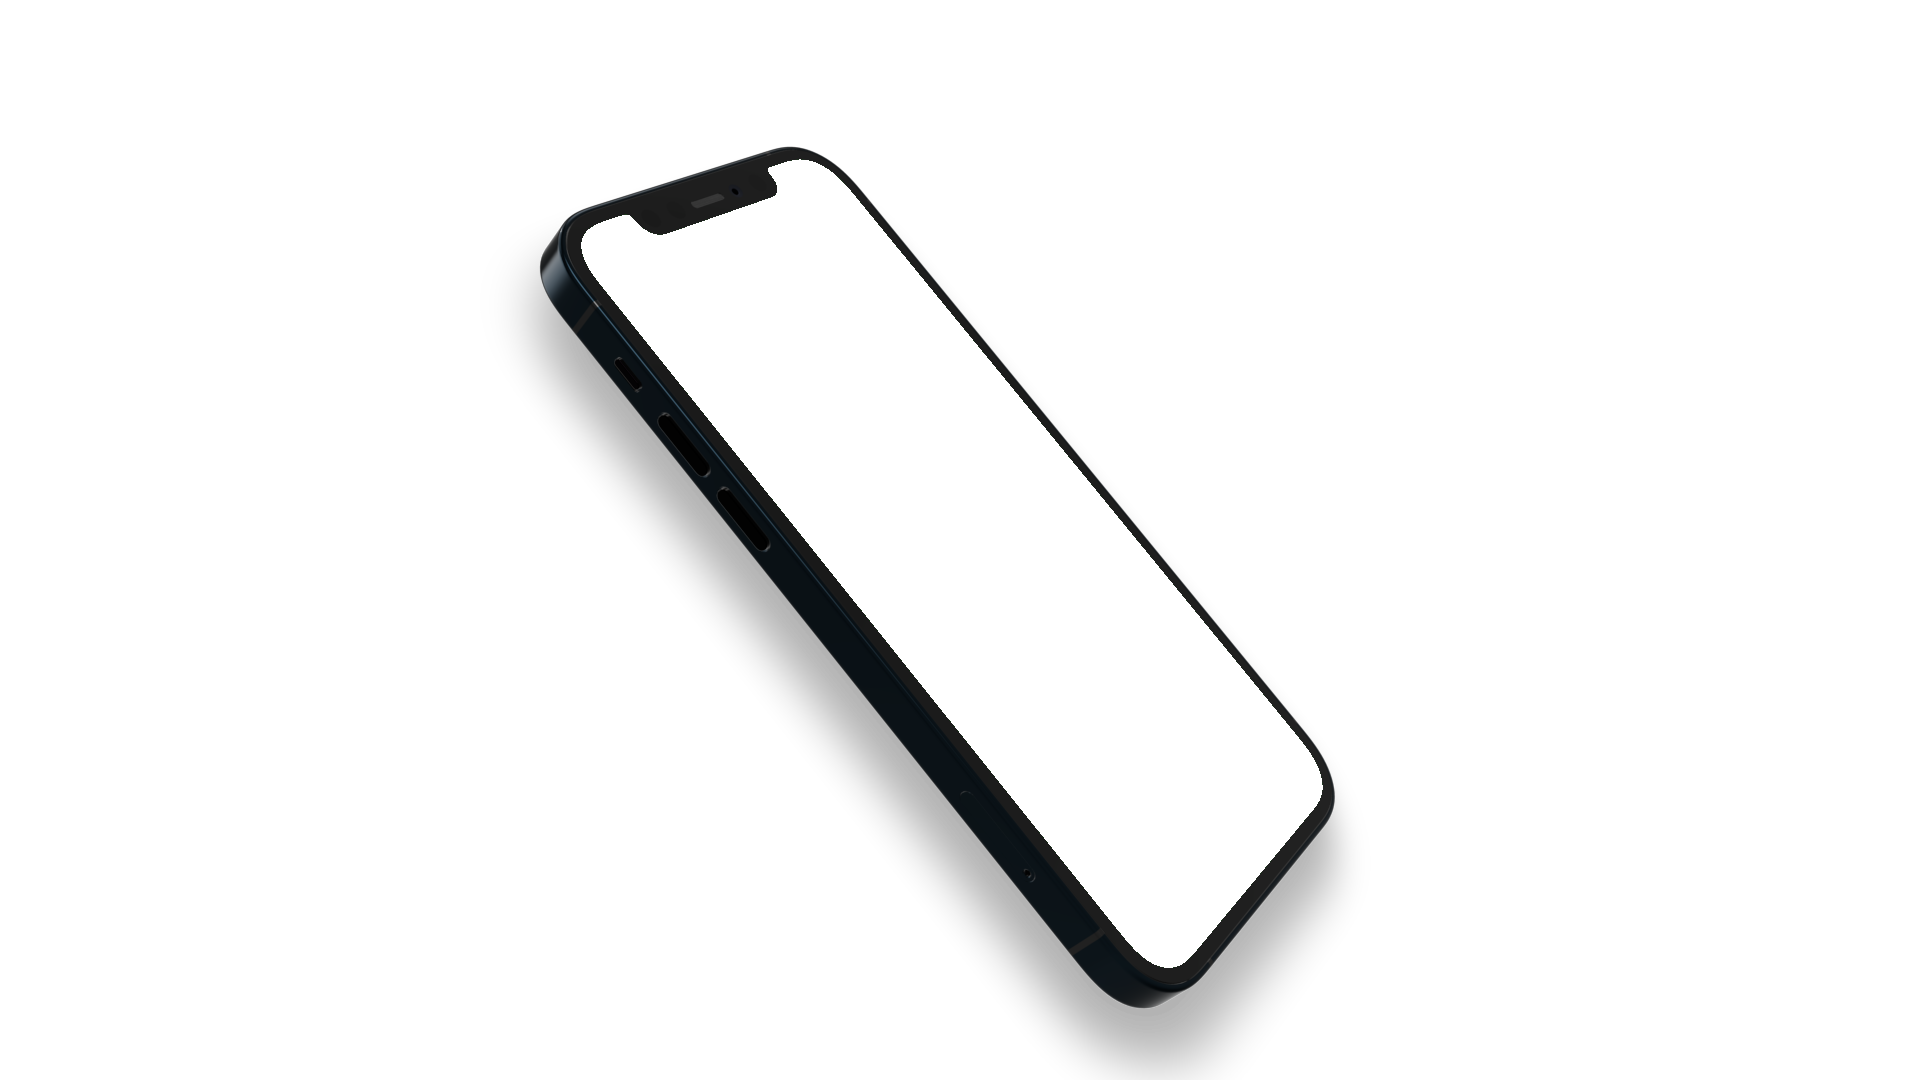 iPhone 12 PNG rotated seen from the side